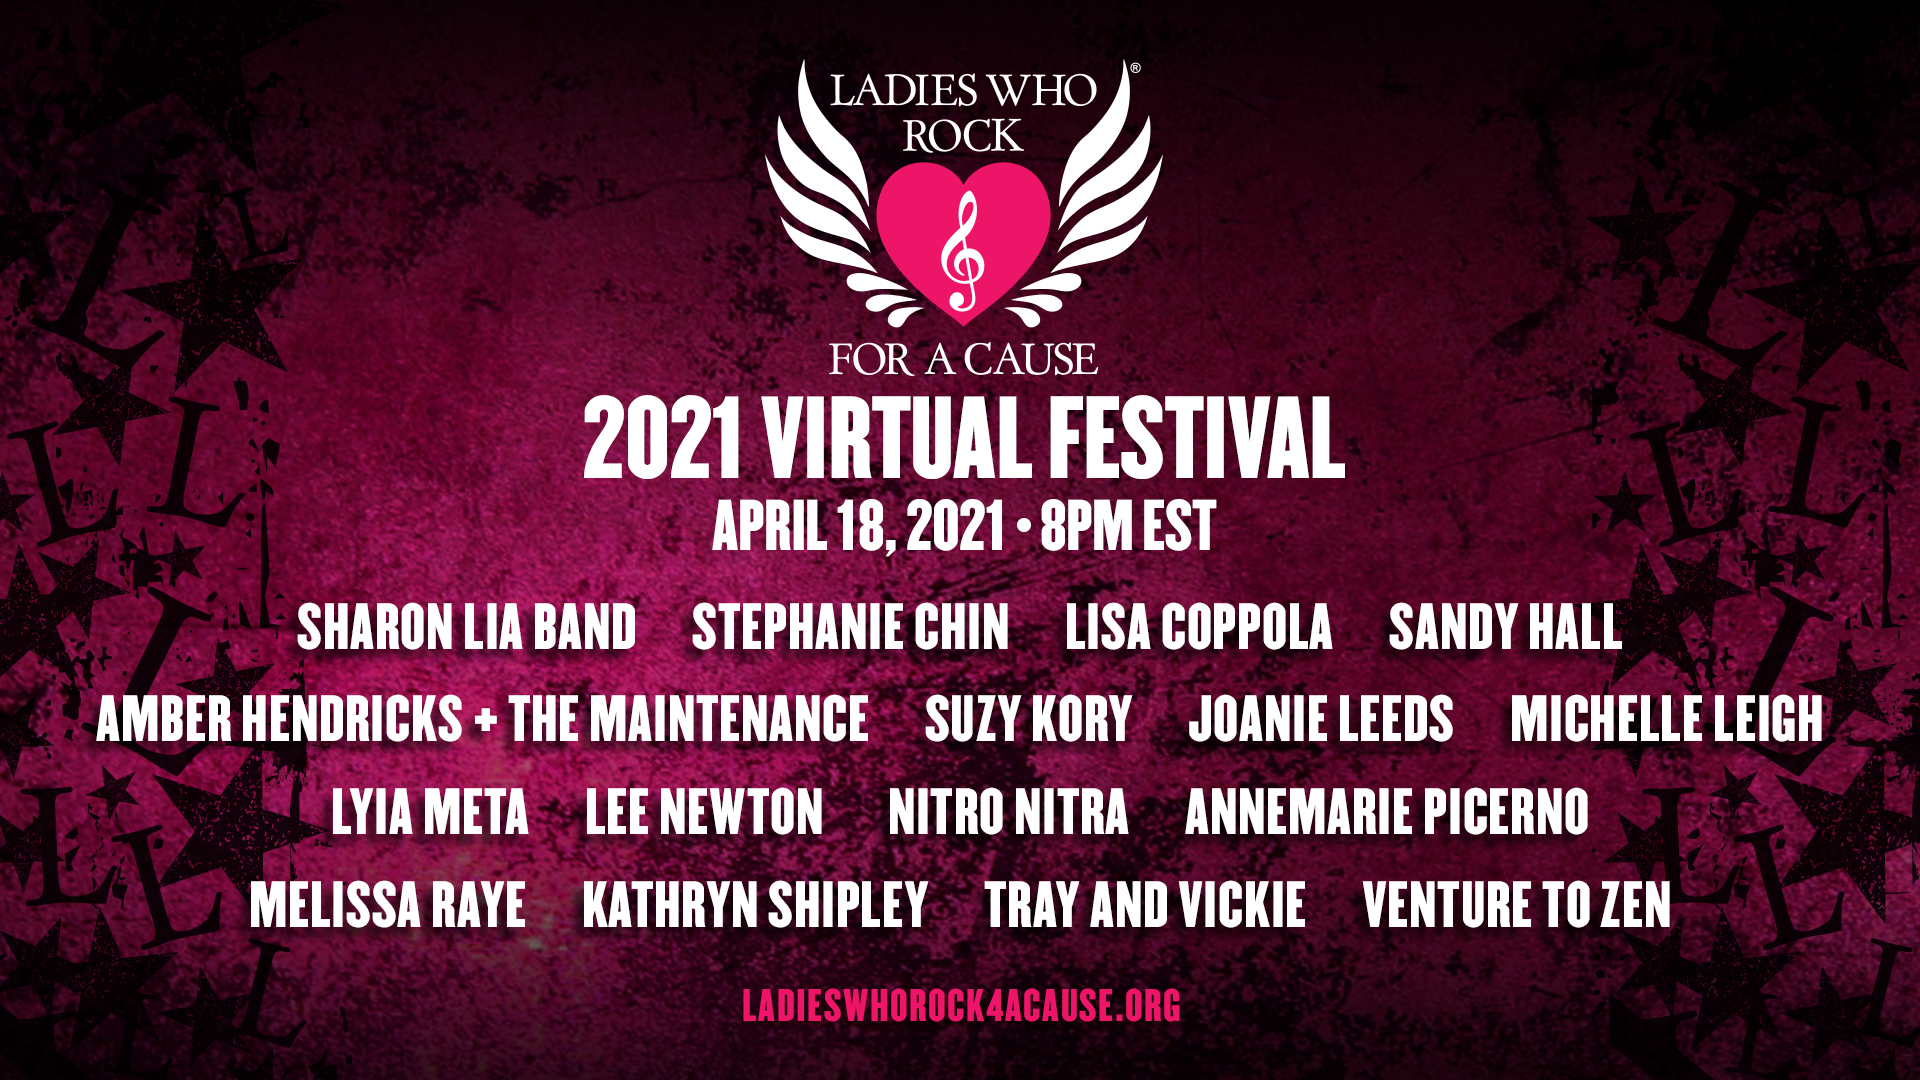 2021 Ladies Who Rock For A Cause Festival Lineup